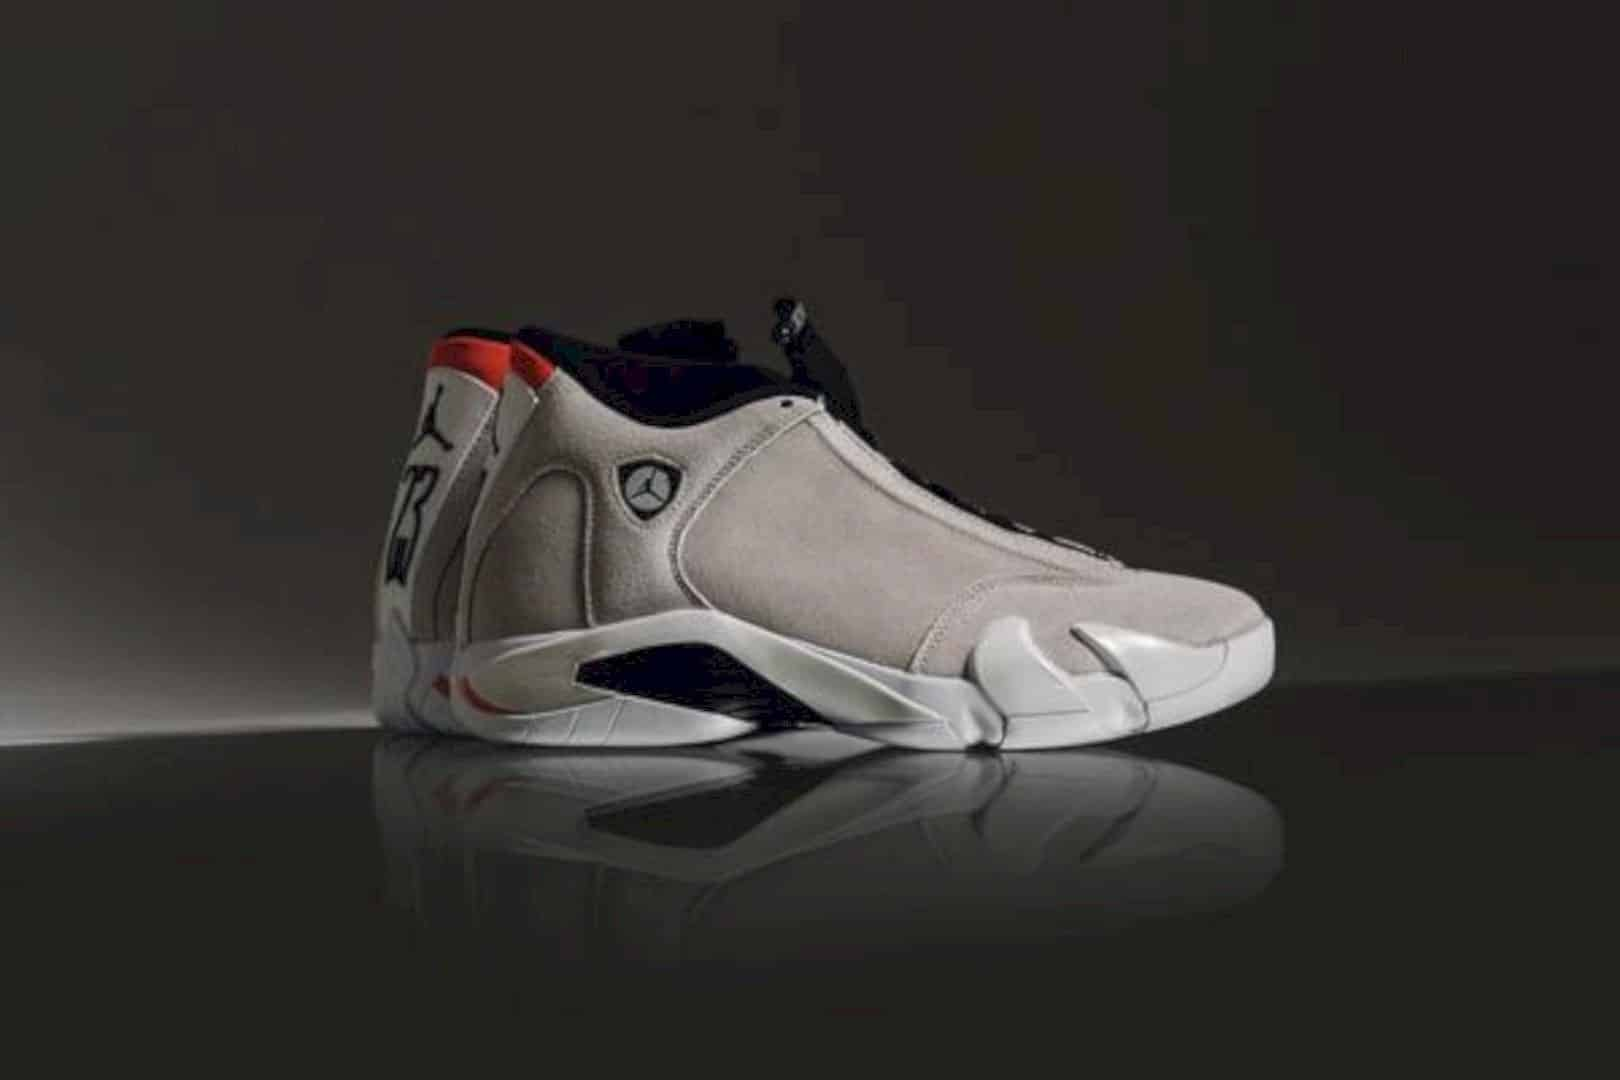 Air Jordan 14 Retro – Desert: The Last of the Signature Line from MJ